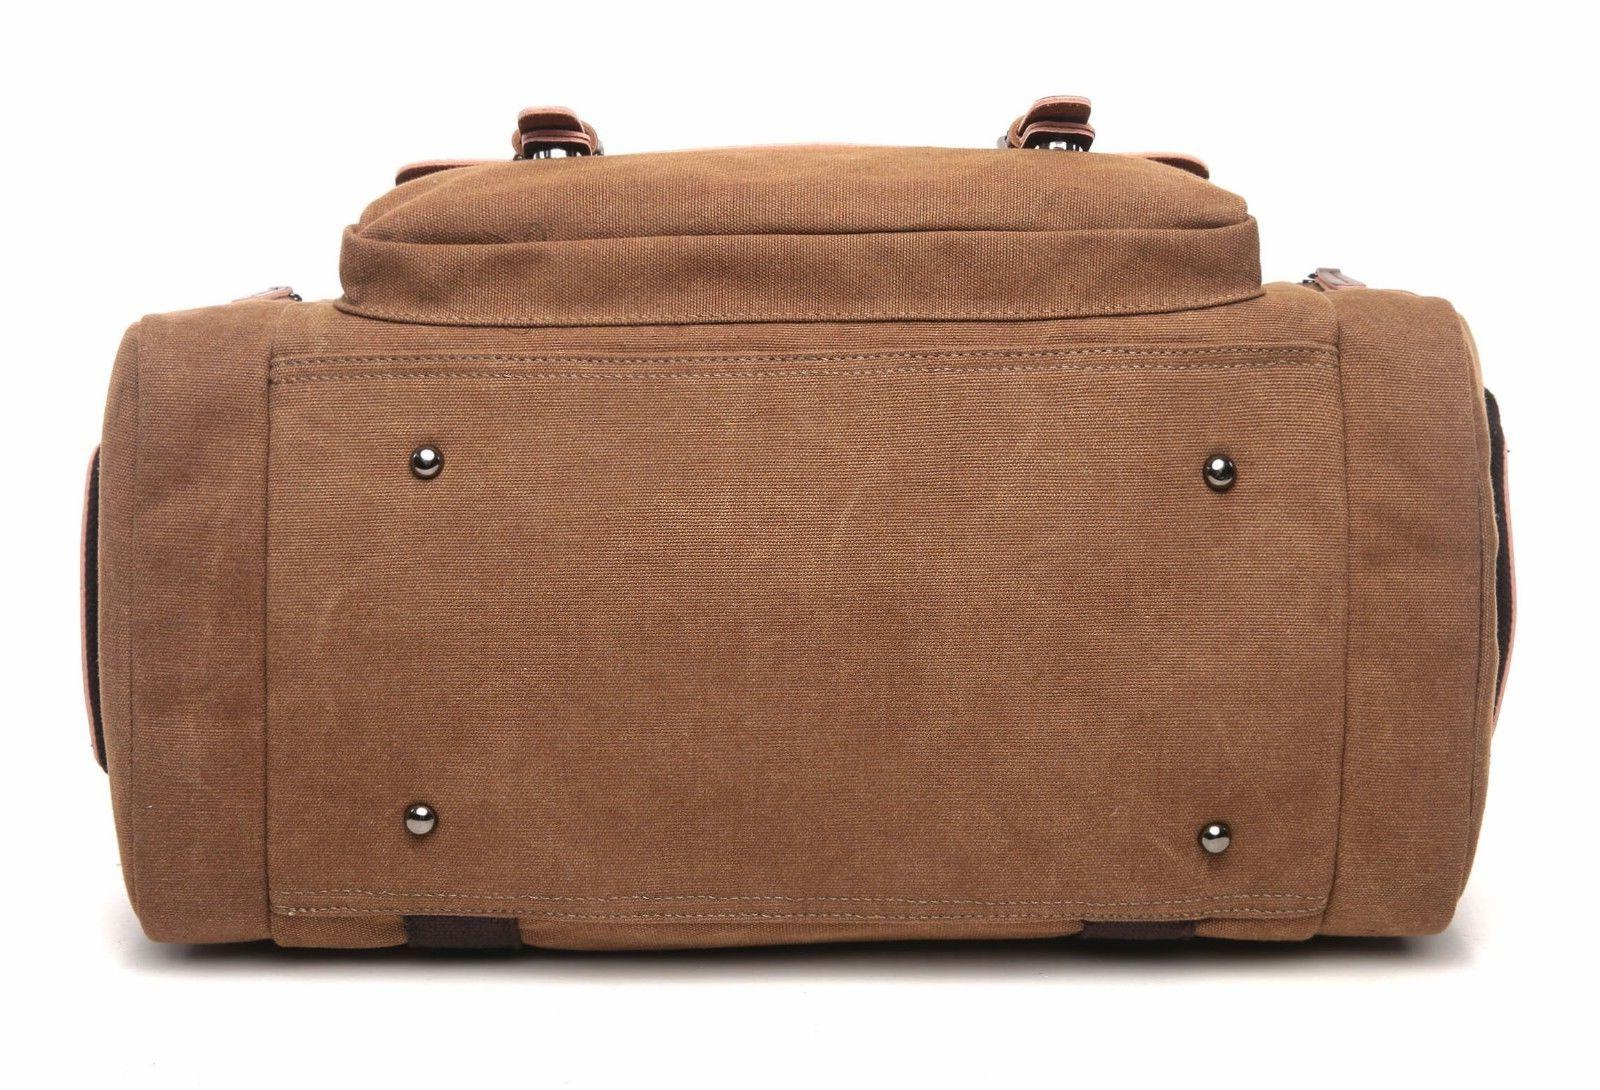 CrossLandy Bag Leather Canvas Bag Tote Luggage